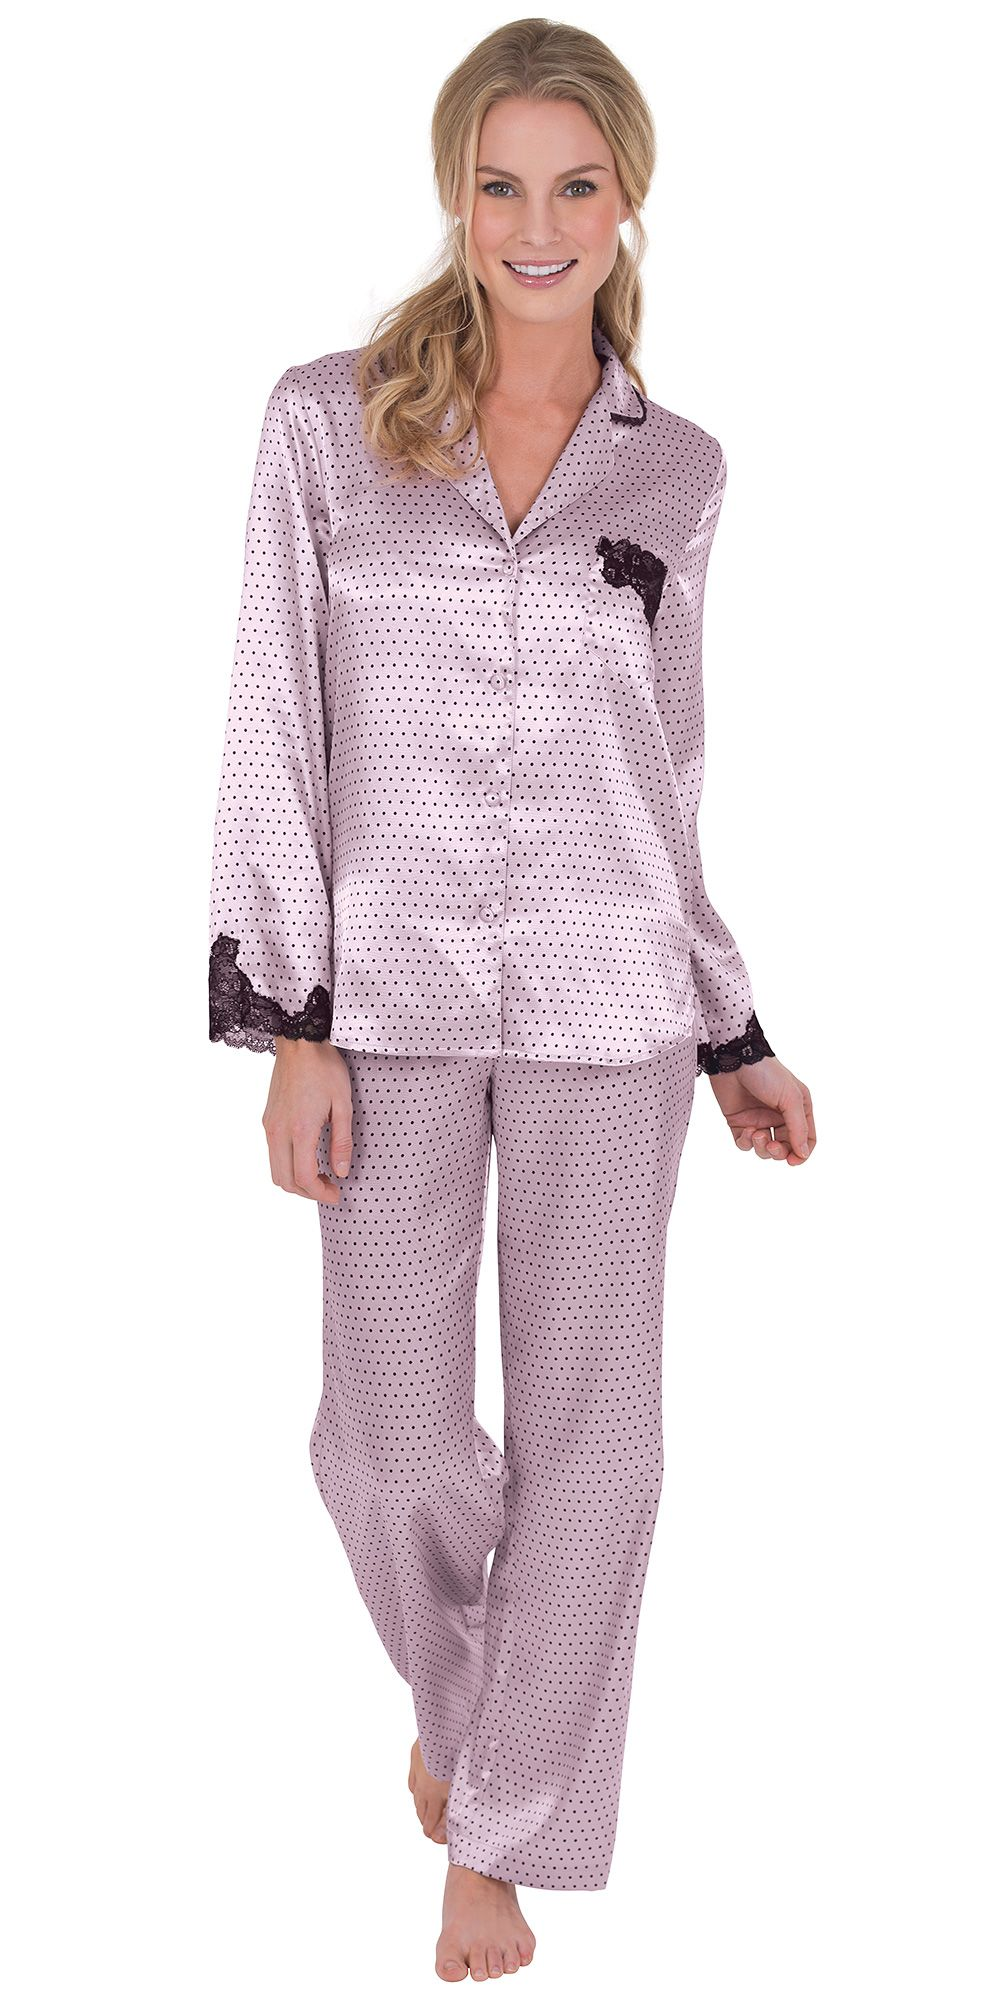 Satin for women men. Pajamas clipart woman pajamas